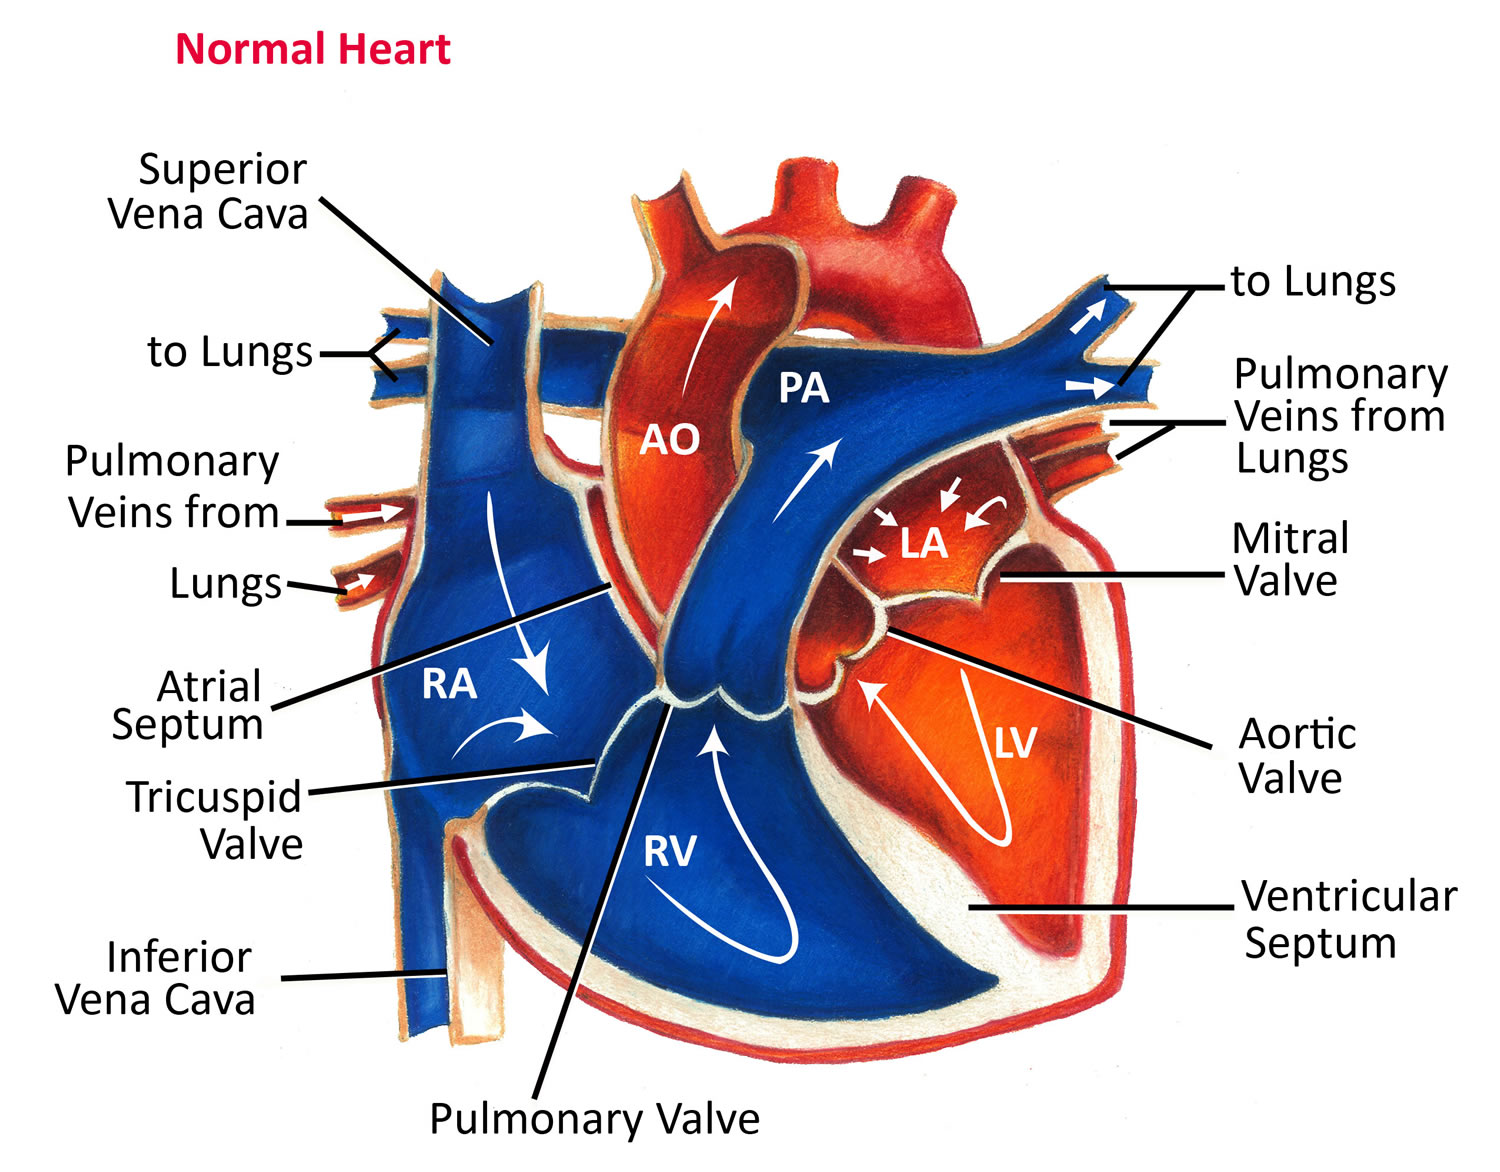 Normal_Heart_Anatomy_and_Blood_Flow